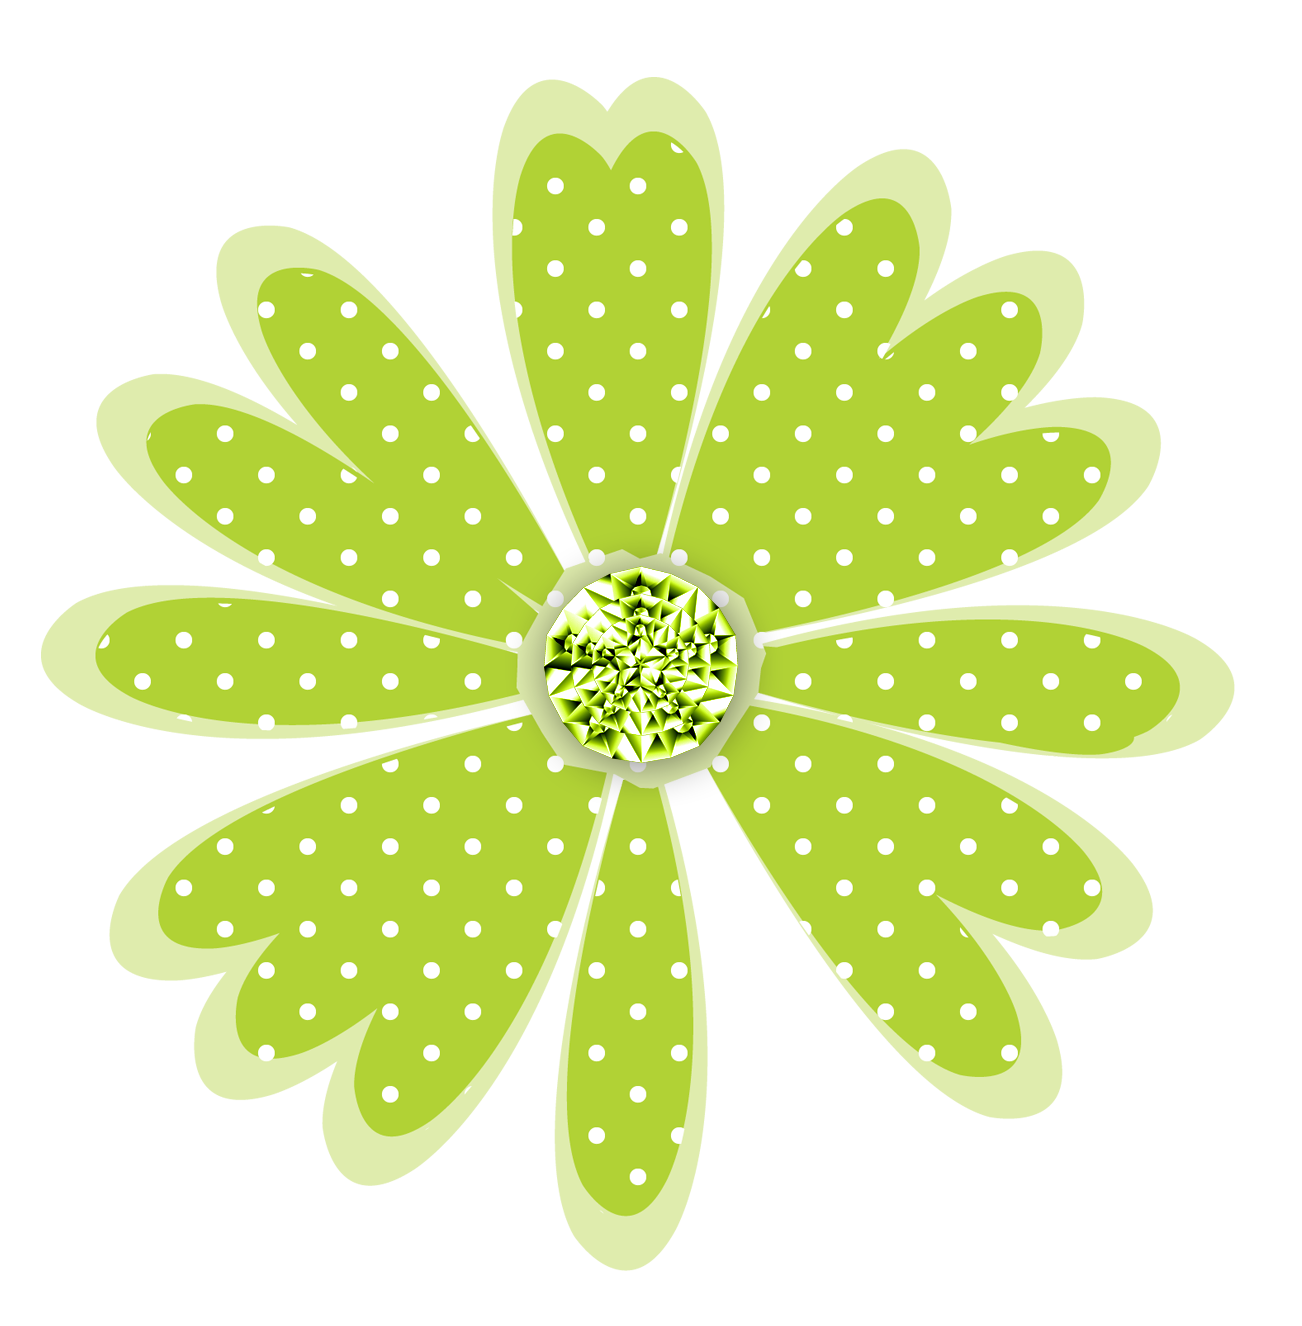 Lime green sun clipart svg free scrapbook | all things positively positive | Page 4 svg free